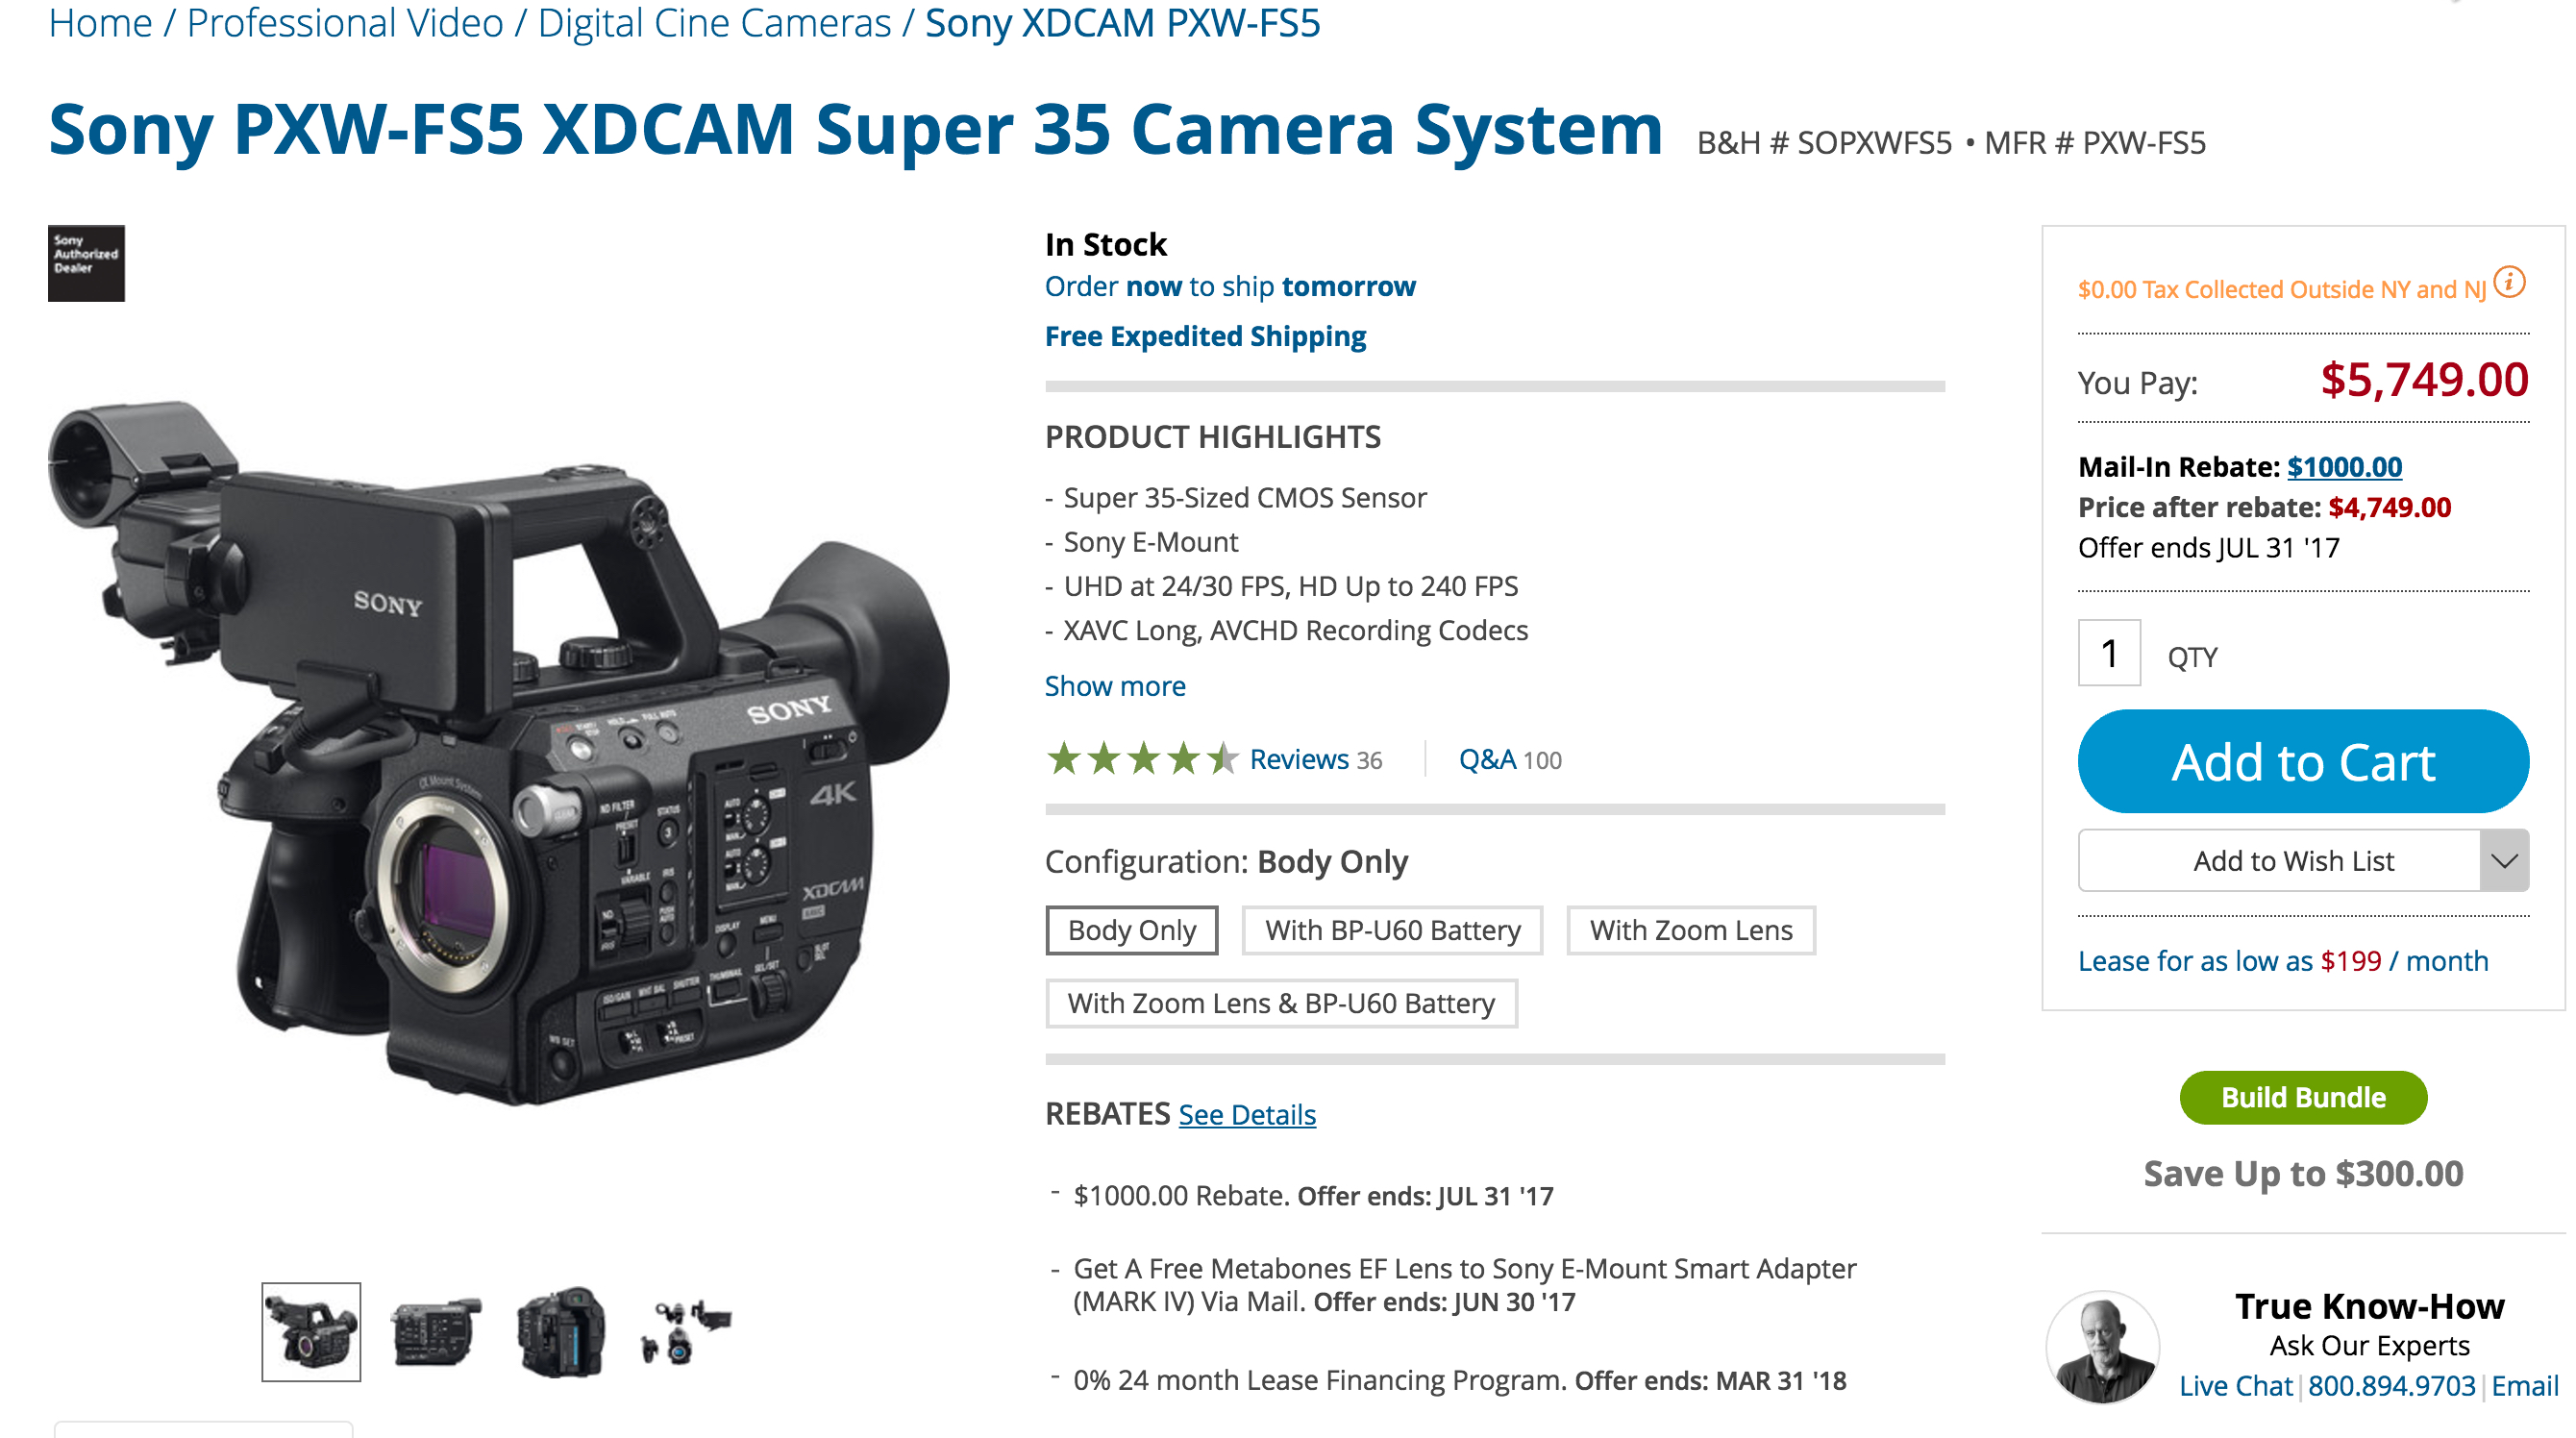 Clever Sony Rebate Deal Rebate On Sony Camera System Canon Rebate Center Canon Rebate Status Payment Approved dpreview Canon Rebate Status